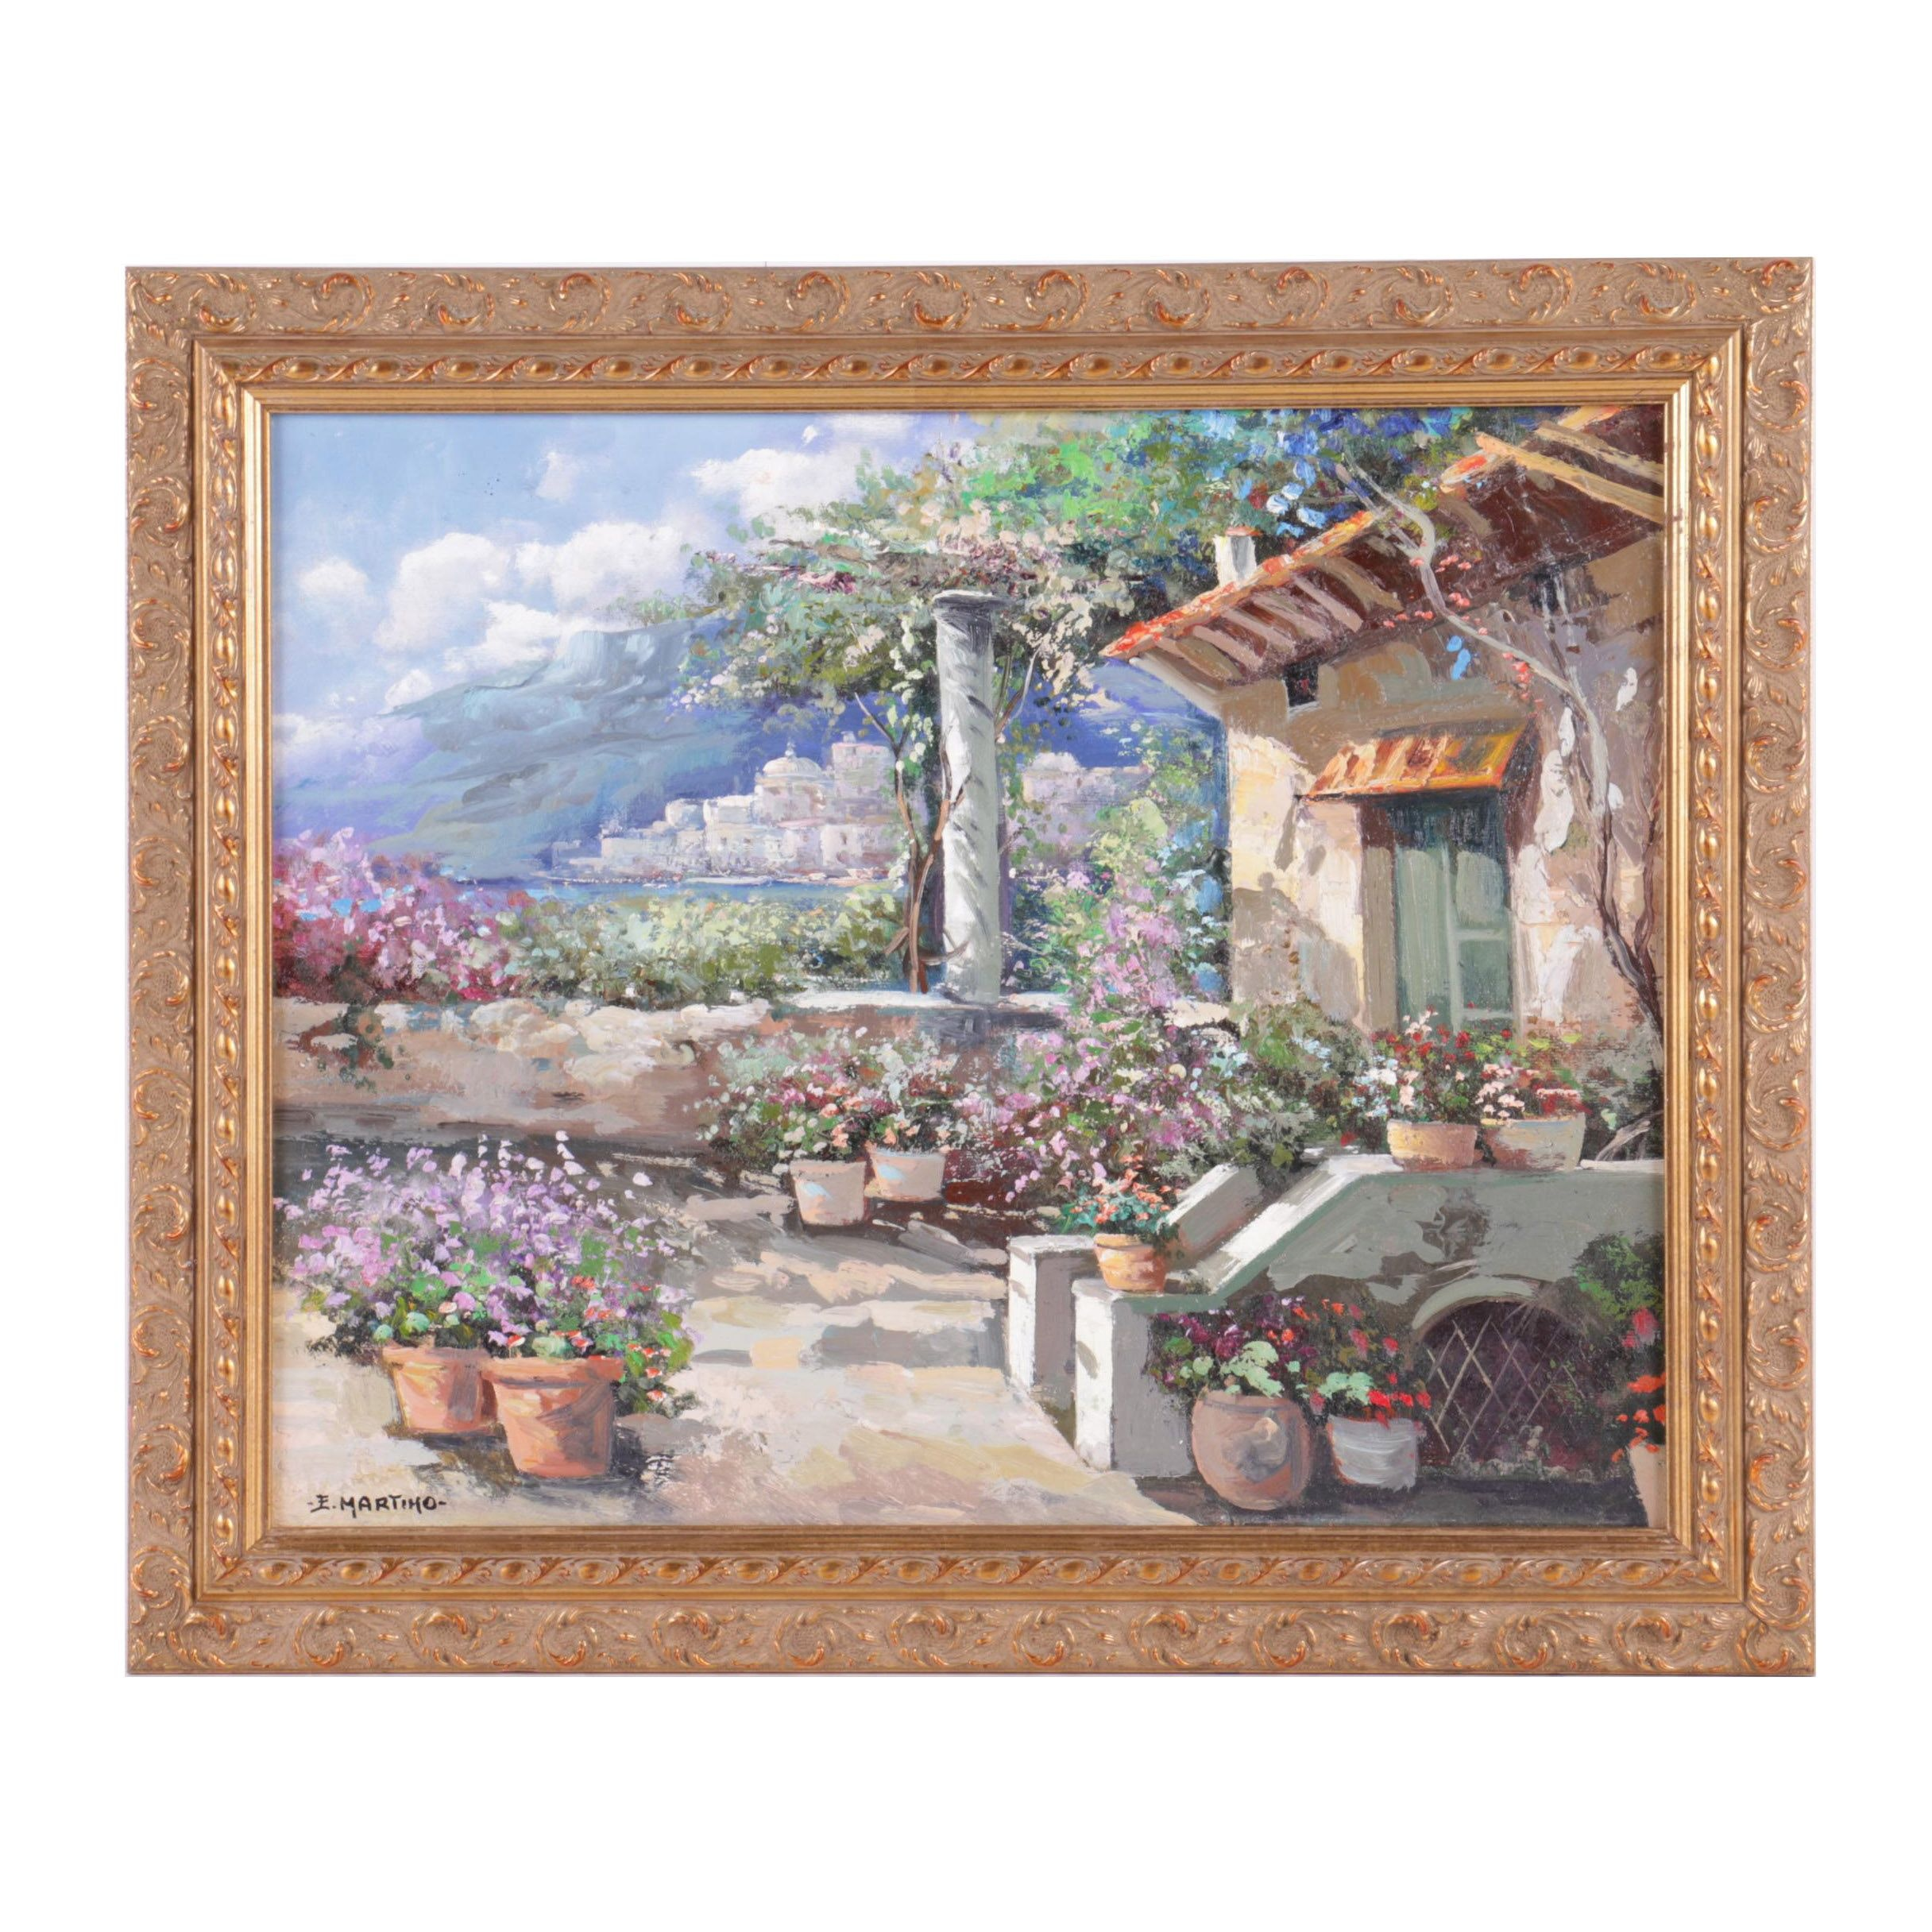 E. Martino Oil Painting on Canvas of a Garden